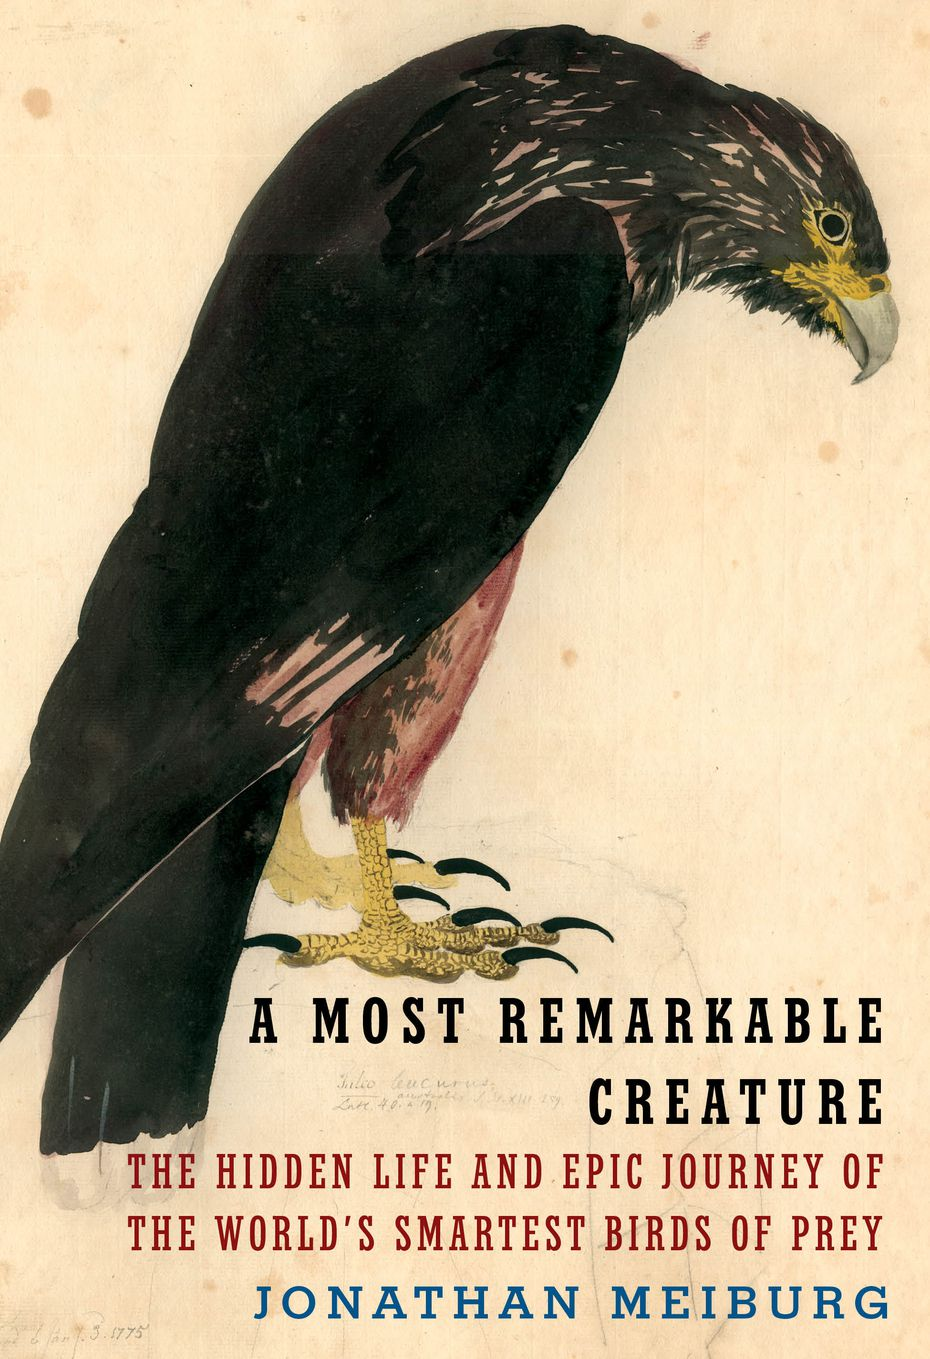 """In """"A Most Remarkable Creature: The Hidden Life and Epic Journey of the World's Smartest Birds of Prey,"""" author Jonathan Meiburg draws on ornithology, geography, paleontology, history and literature, especially the works of British naturalist and novelist William Henry Hudson."""